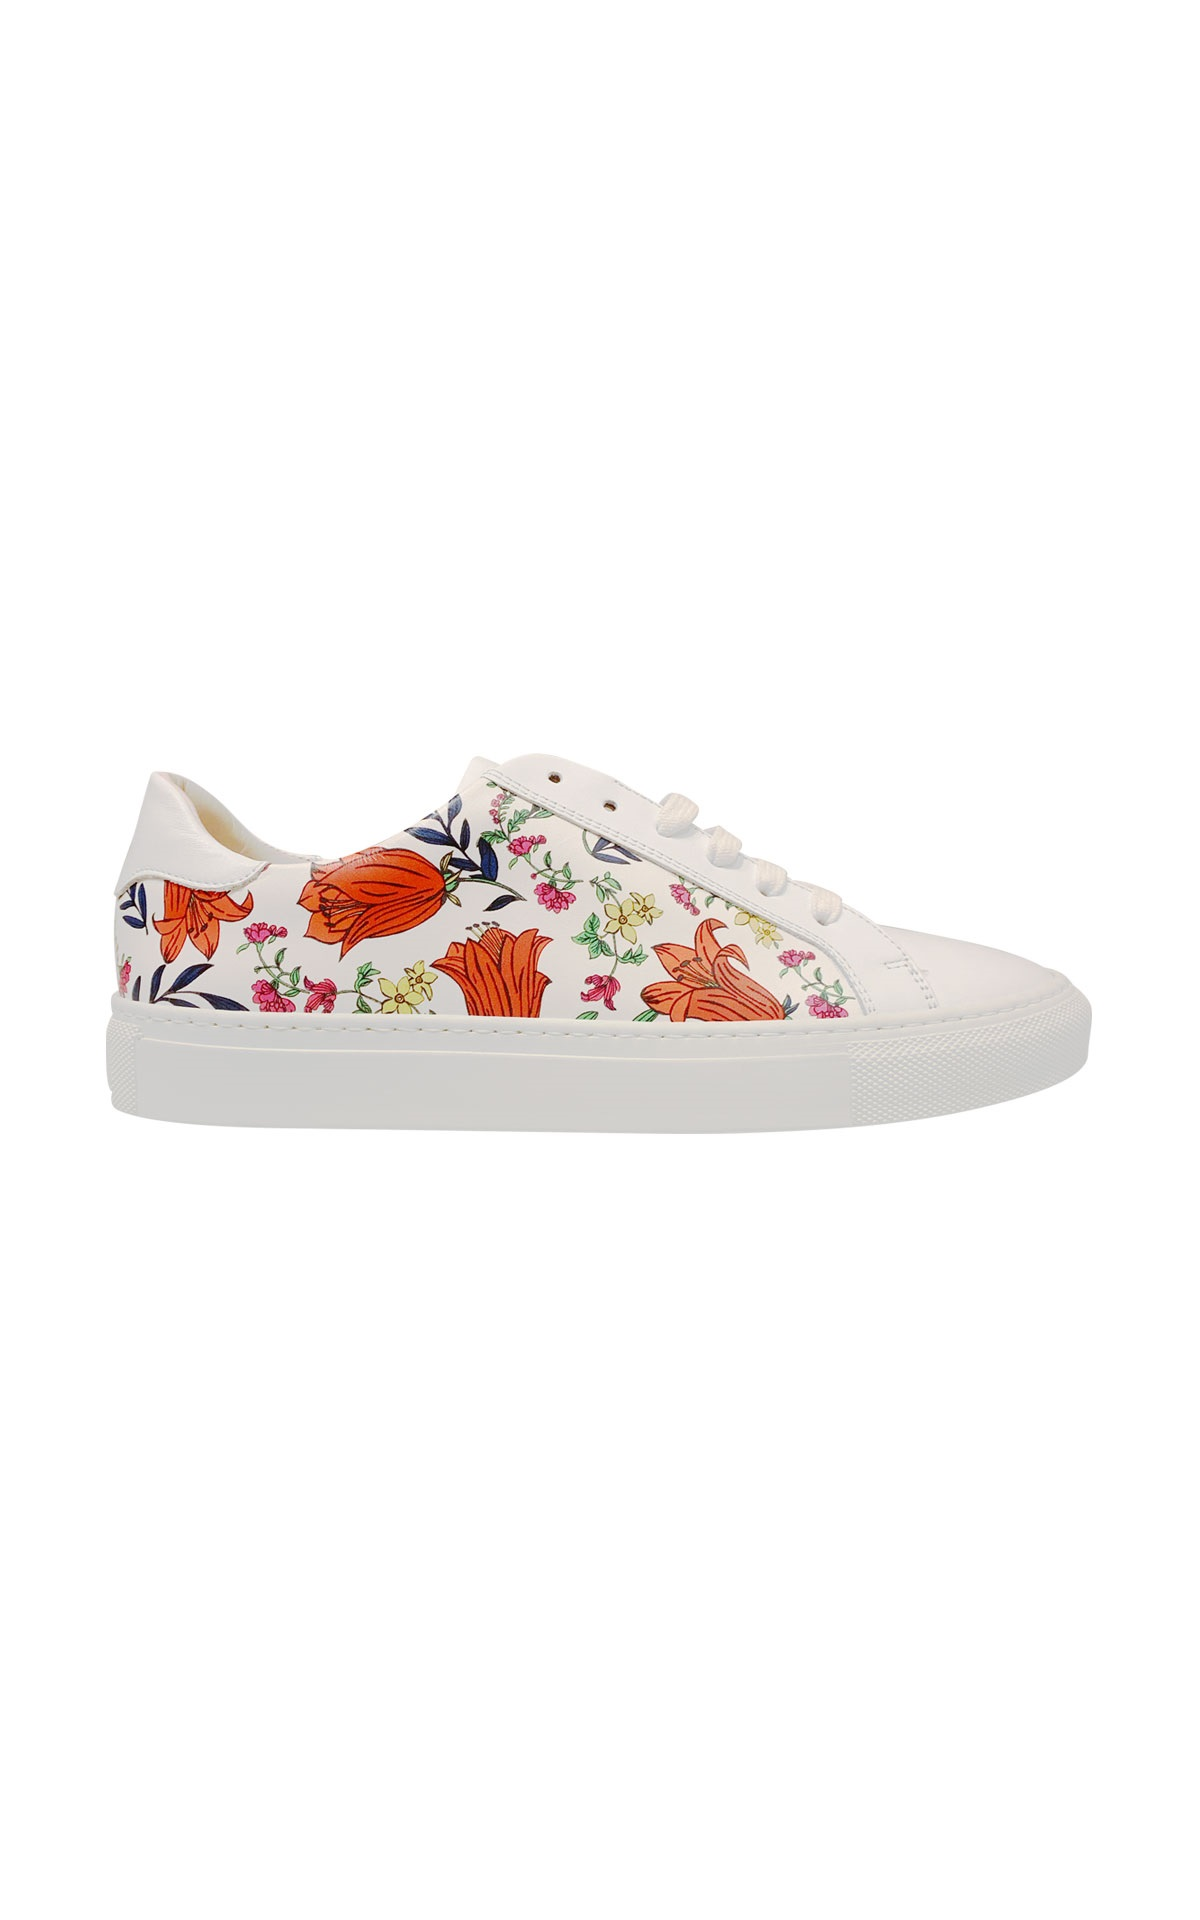 White sneakers with flowers Escada